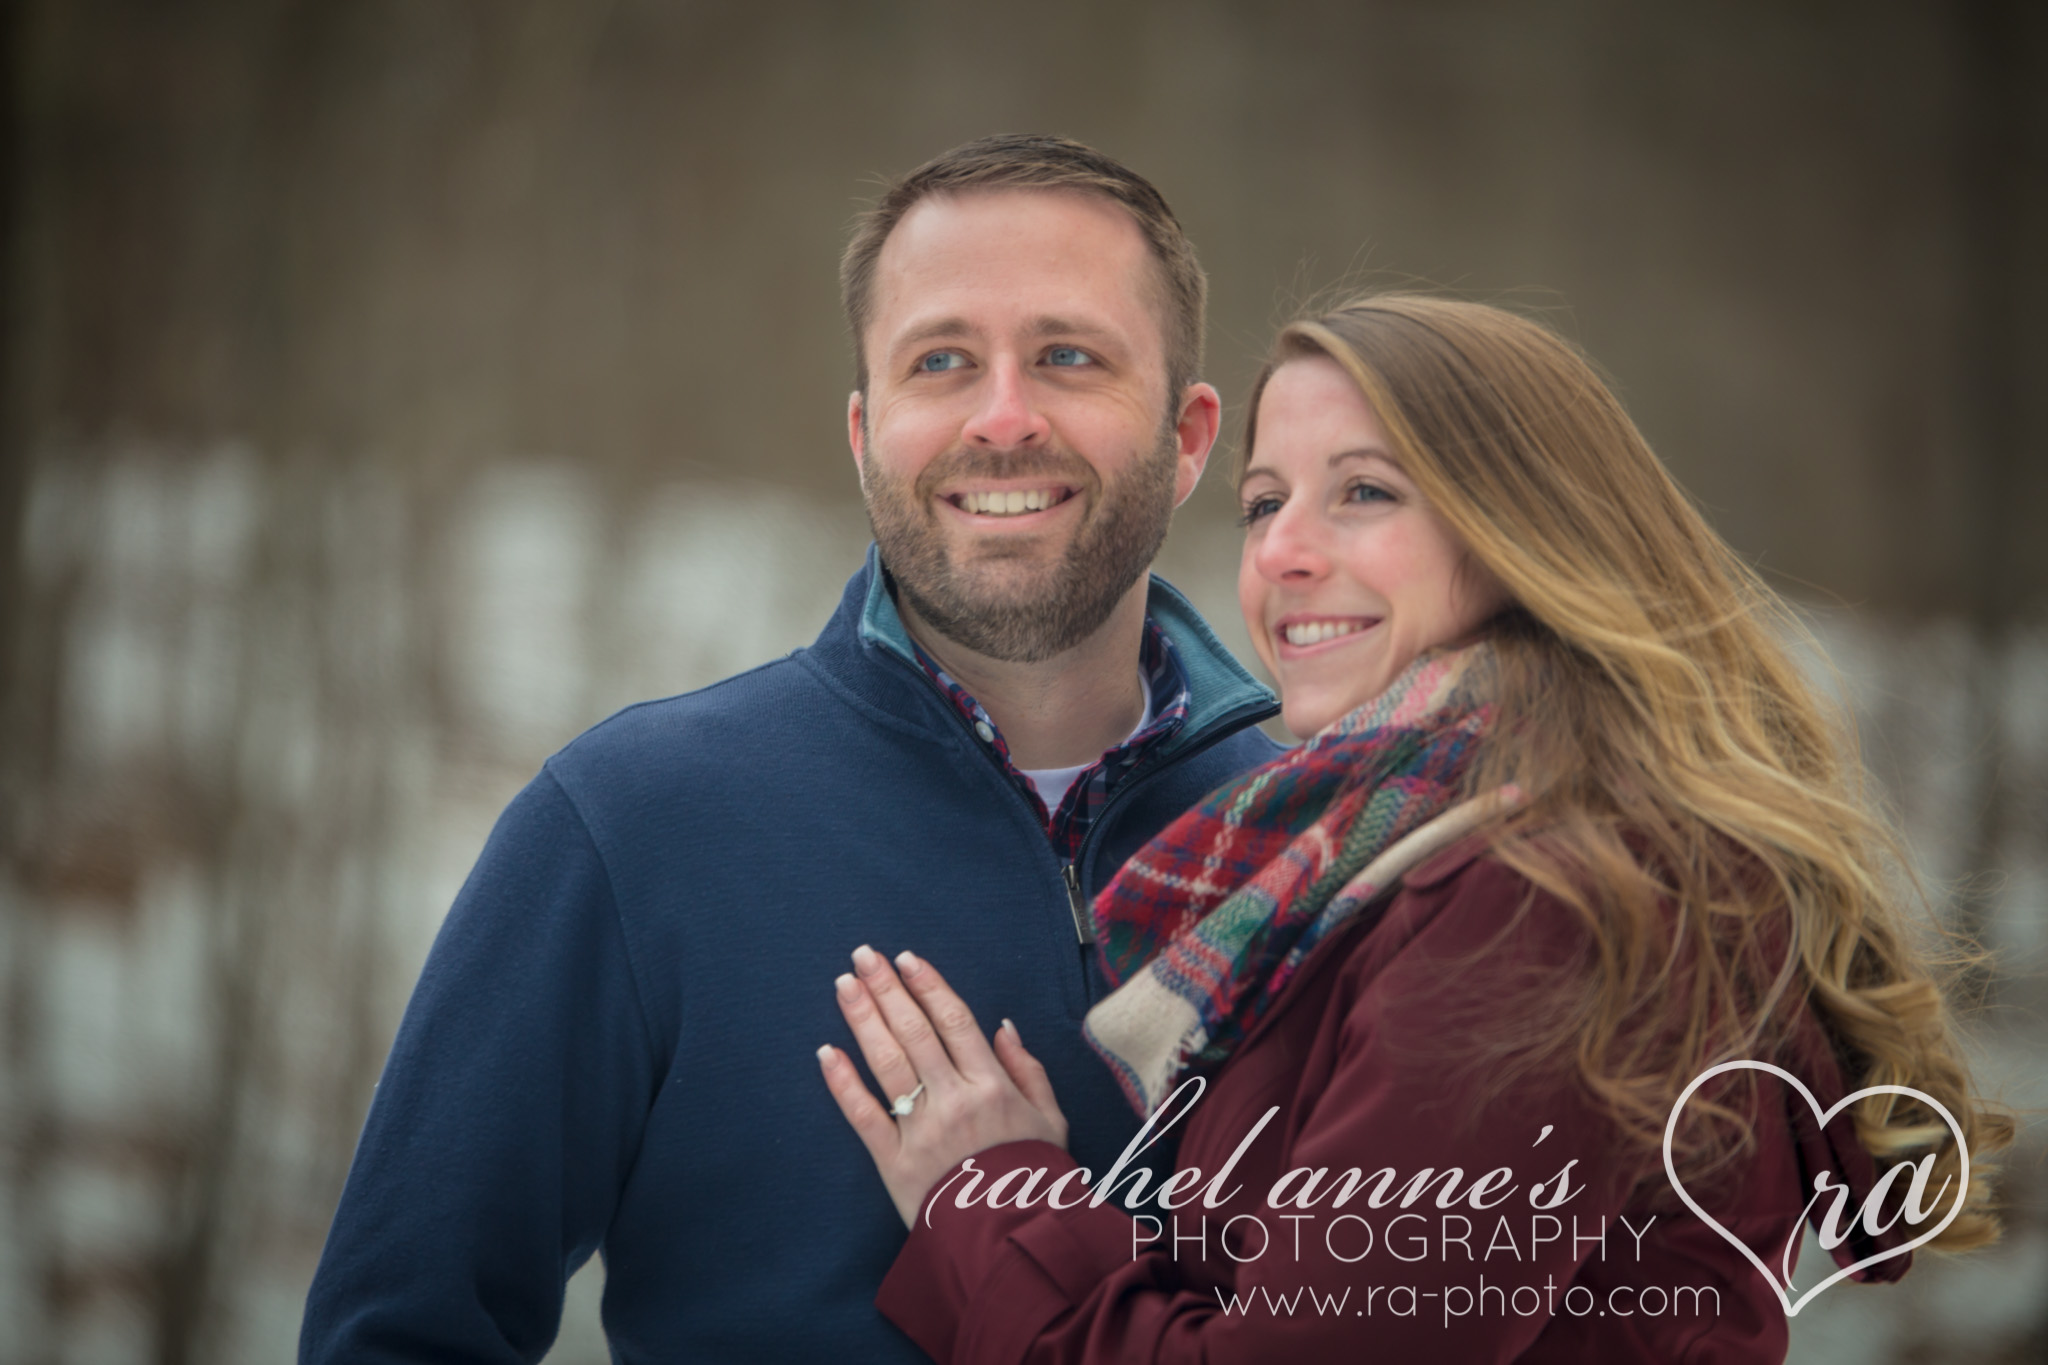 002-JKM-DUBOIS-PA-ENGAGEMENT-PHOTOGRAPHY.jpg